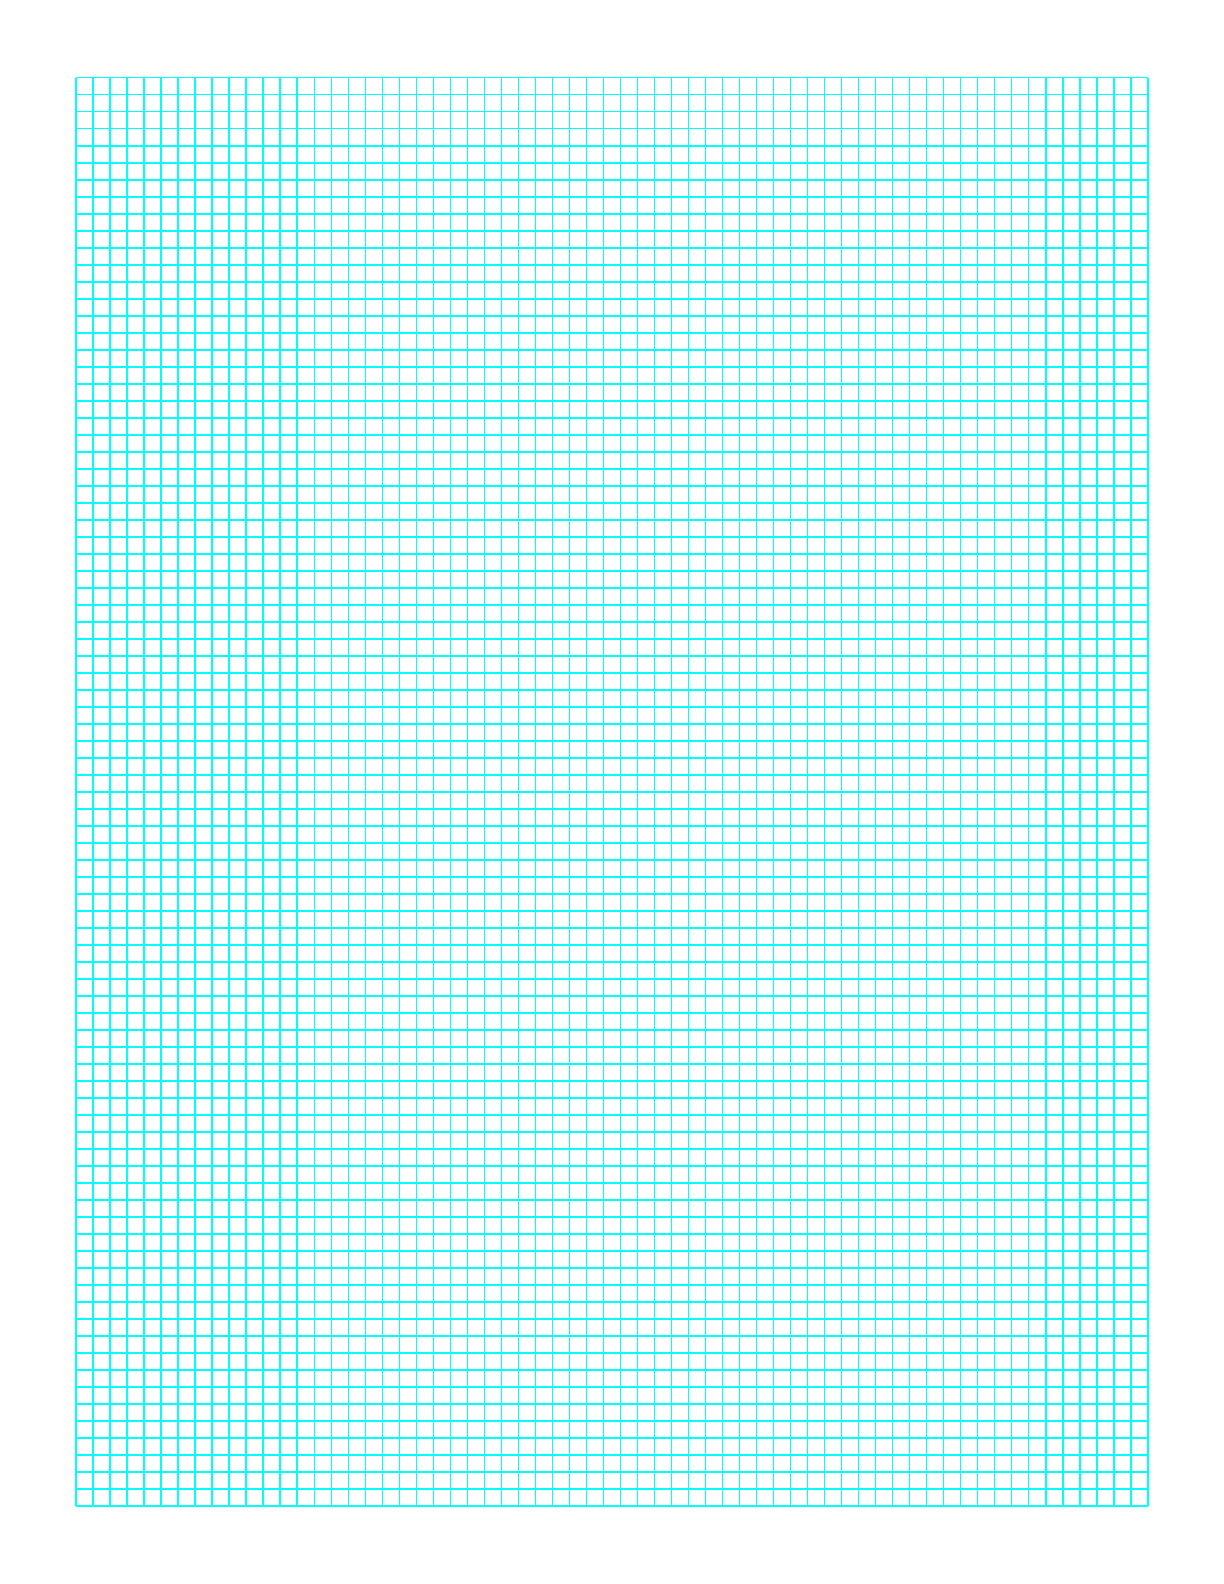 graph paper on a4 paper 1 line every 3 mm free download